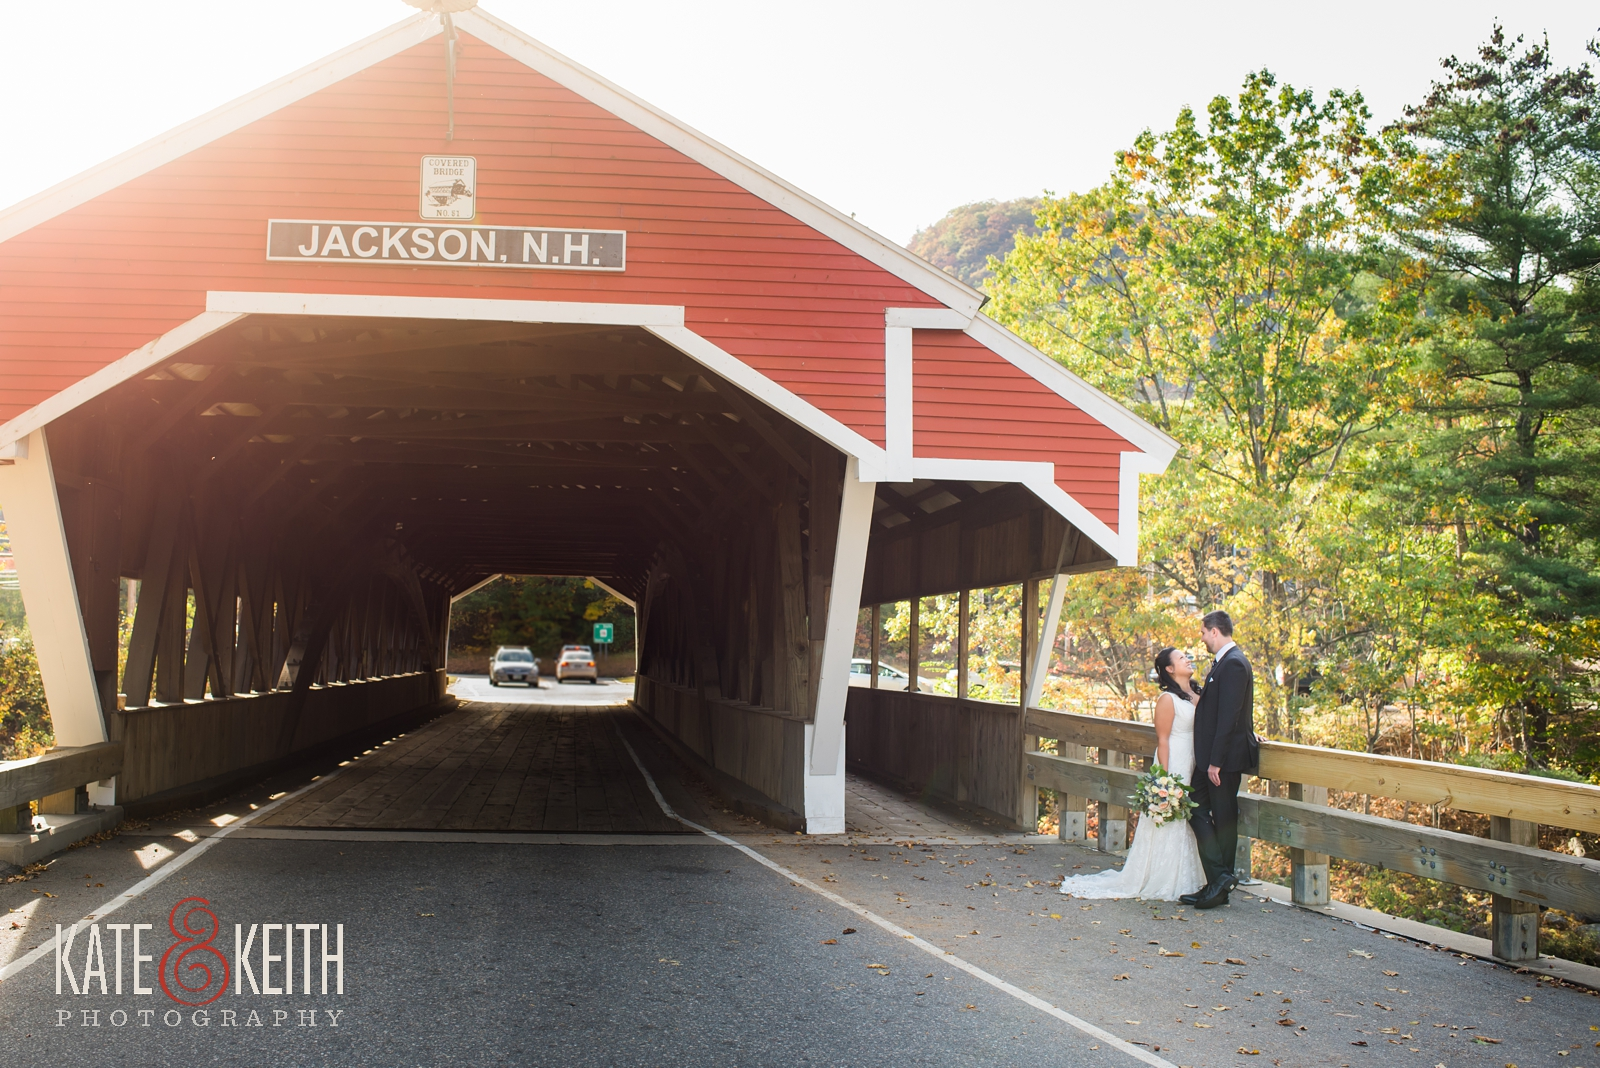 wedding weekend, Jackson, New Hampshire, Whitney's Inn, getting ready, wedding photographers, weekend events, outdoor wedding, mens wedding attire, bridal gown, lace wedding dress, wedding suits, grooms attire, autumn wedding, fall wedding, mountain wedding, weekend wedding, first look, covered bridge, New England, wedding portraits, couple portraits, candid wedding portraits, natural wedding photos